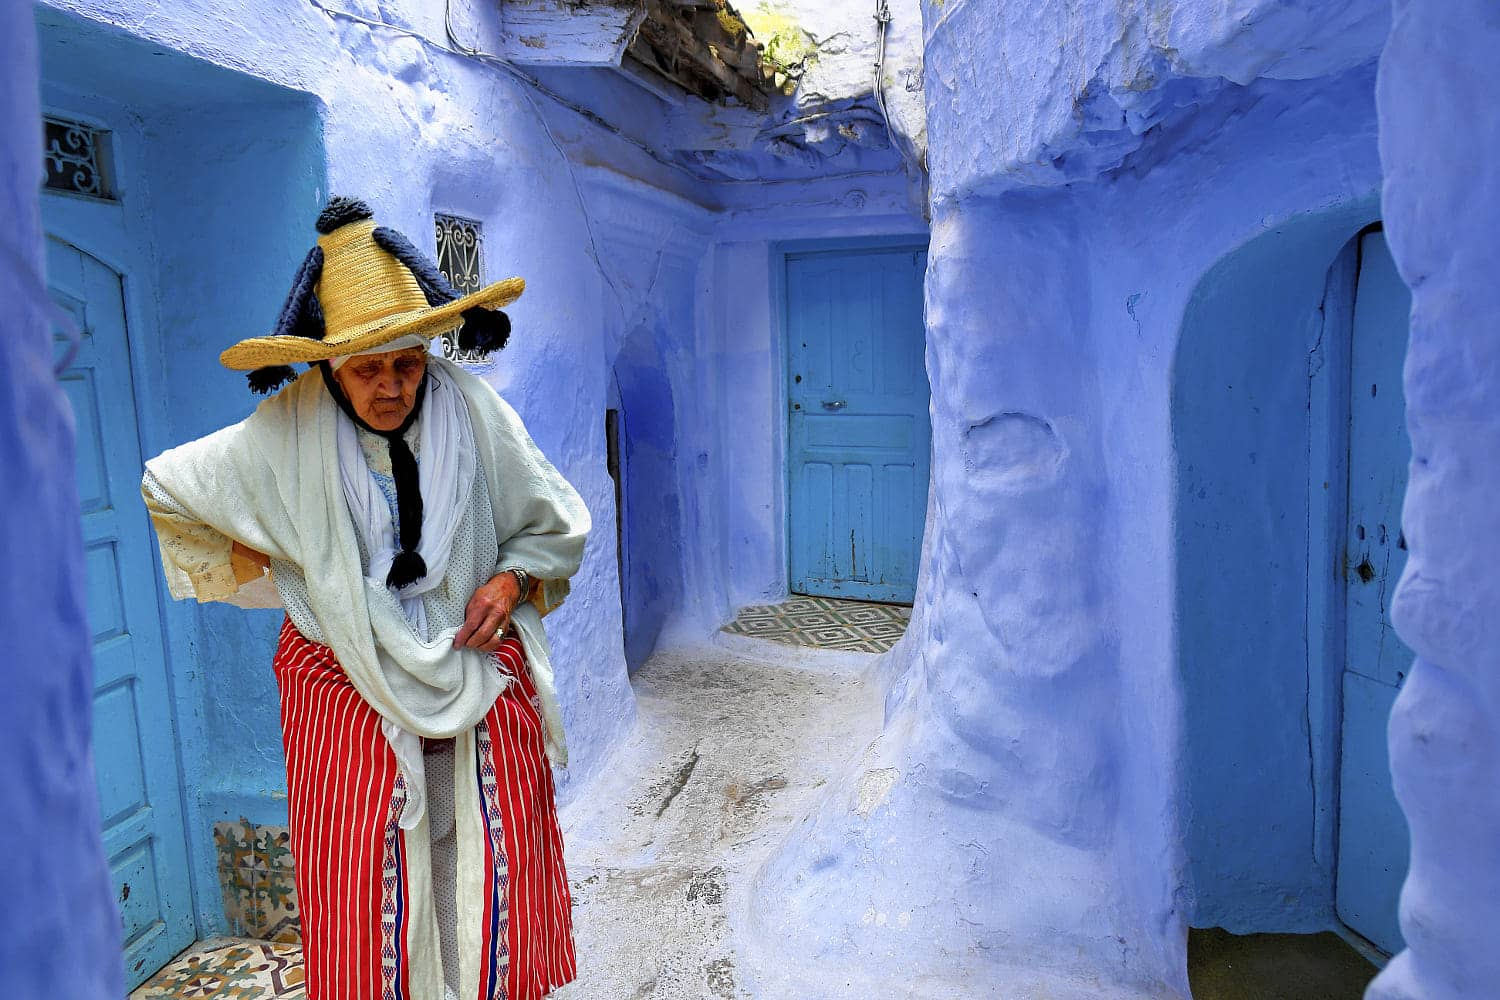 Tangier – Chefchaouen – Erg Chebbi and Marrakech